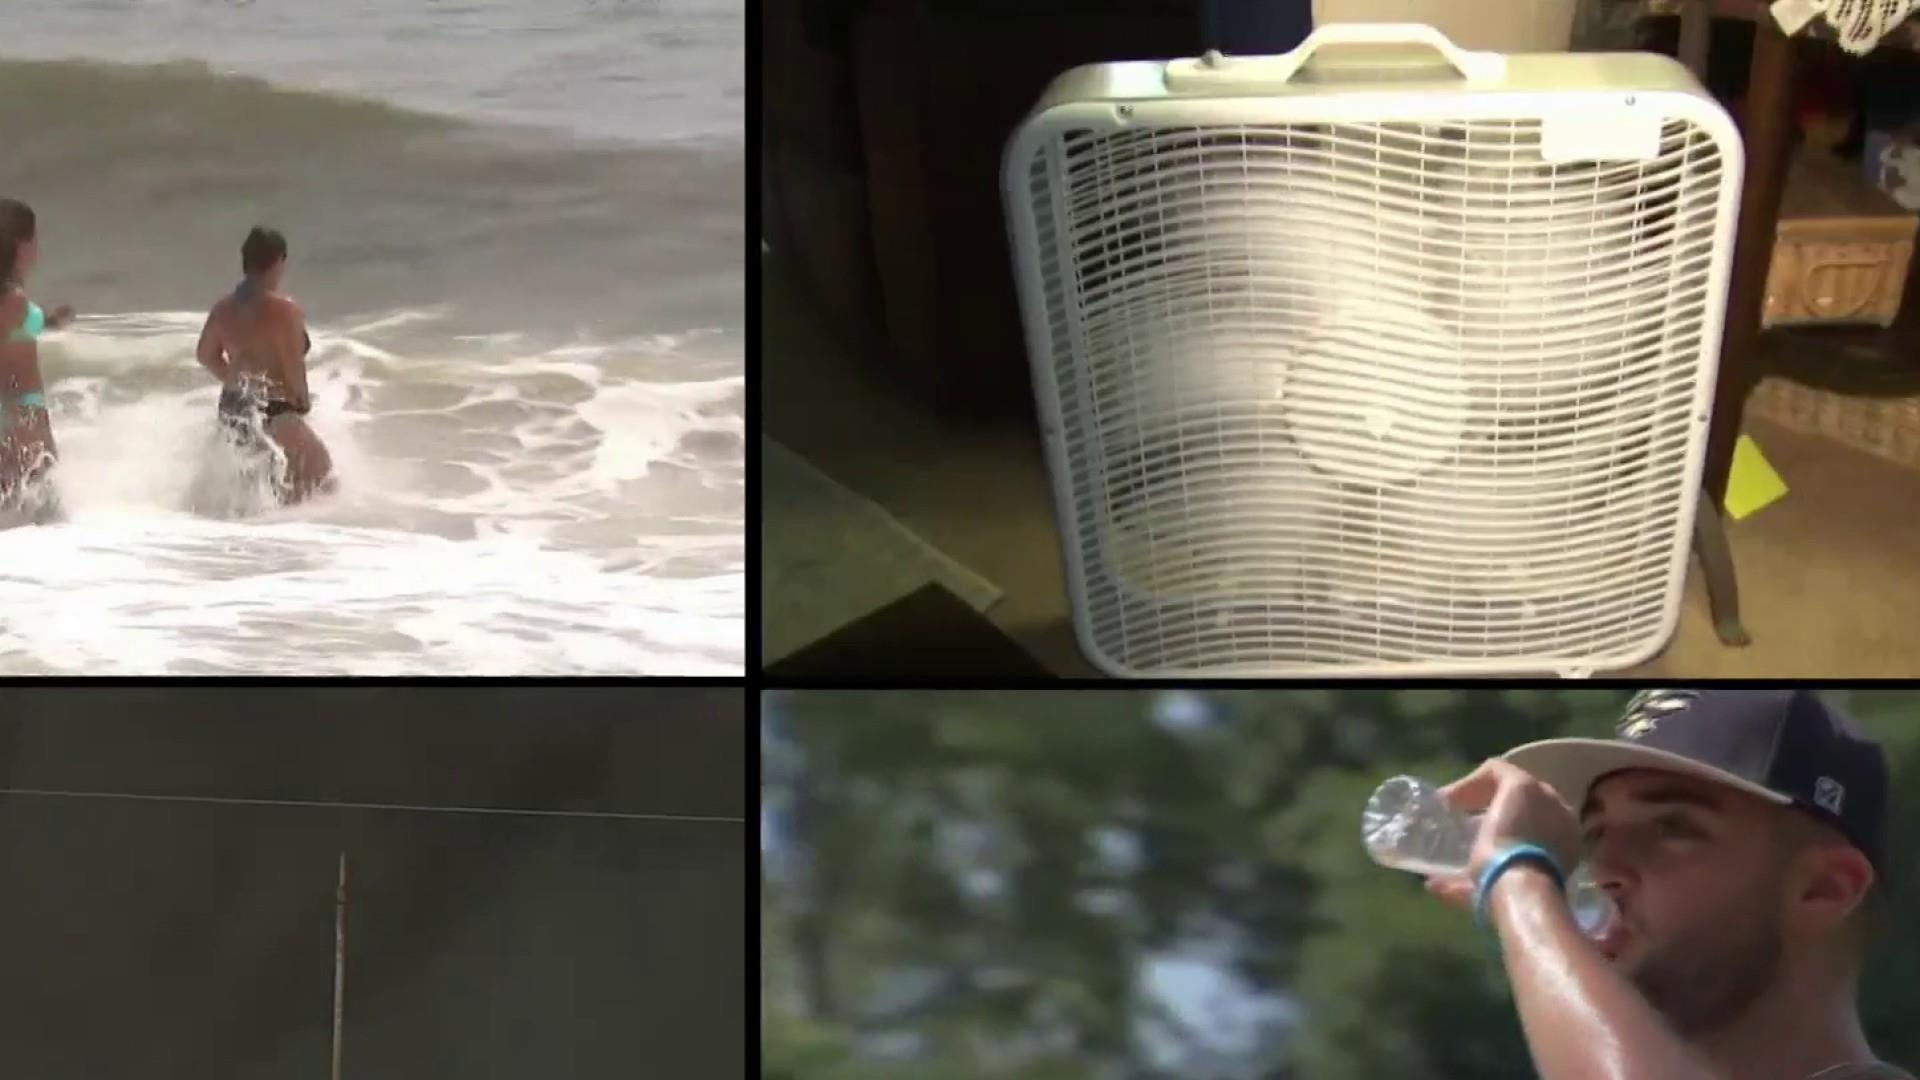 Heat wave blazes on: At least 3 people in Maryland and Arkansas die due to scorching weather